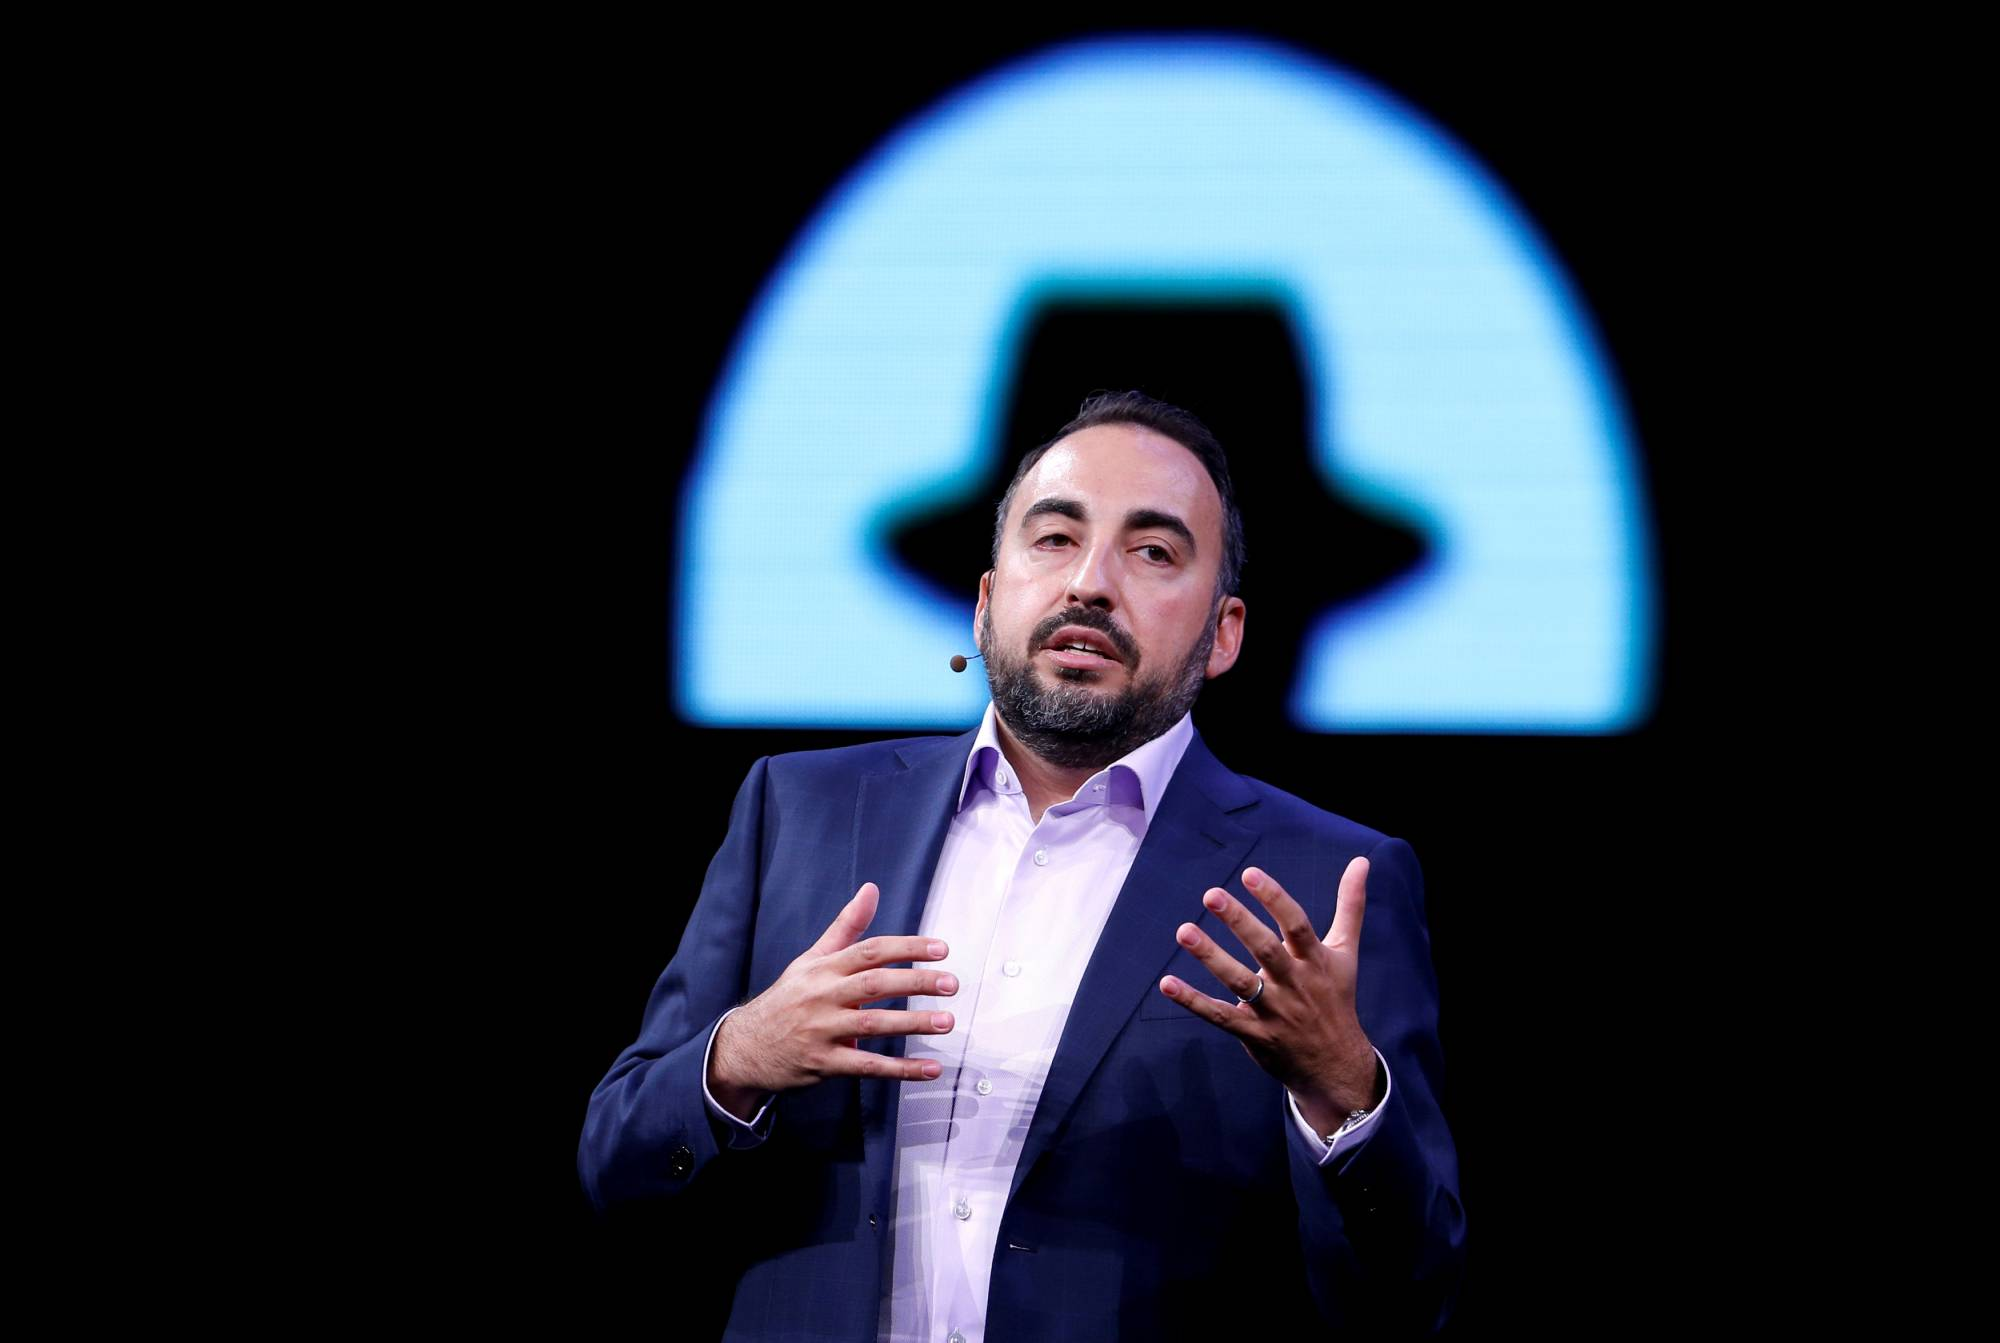 Facebook CSO Alex Stamos gives a keynote address during the Black Hat information security conference in Las Vegas